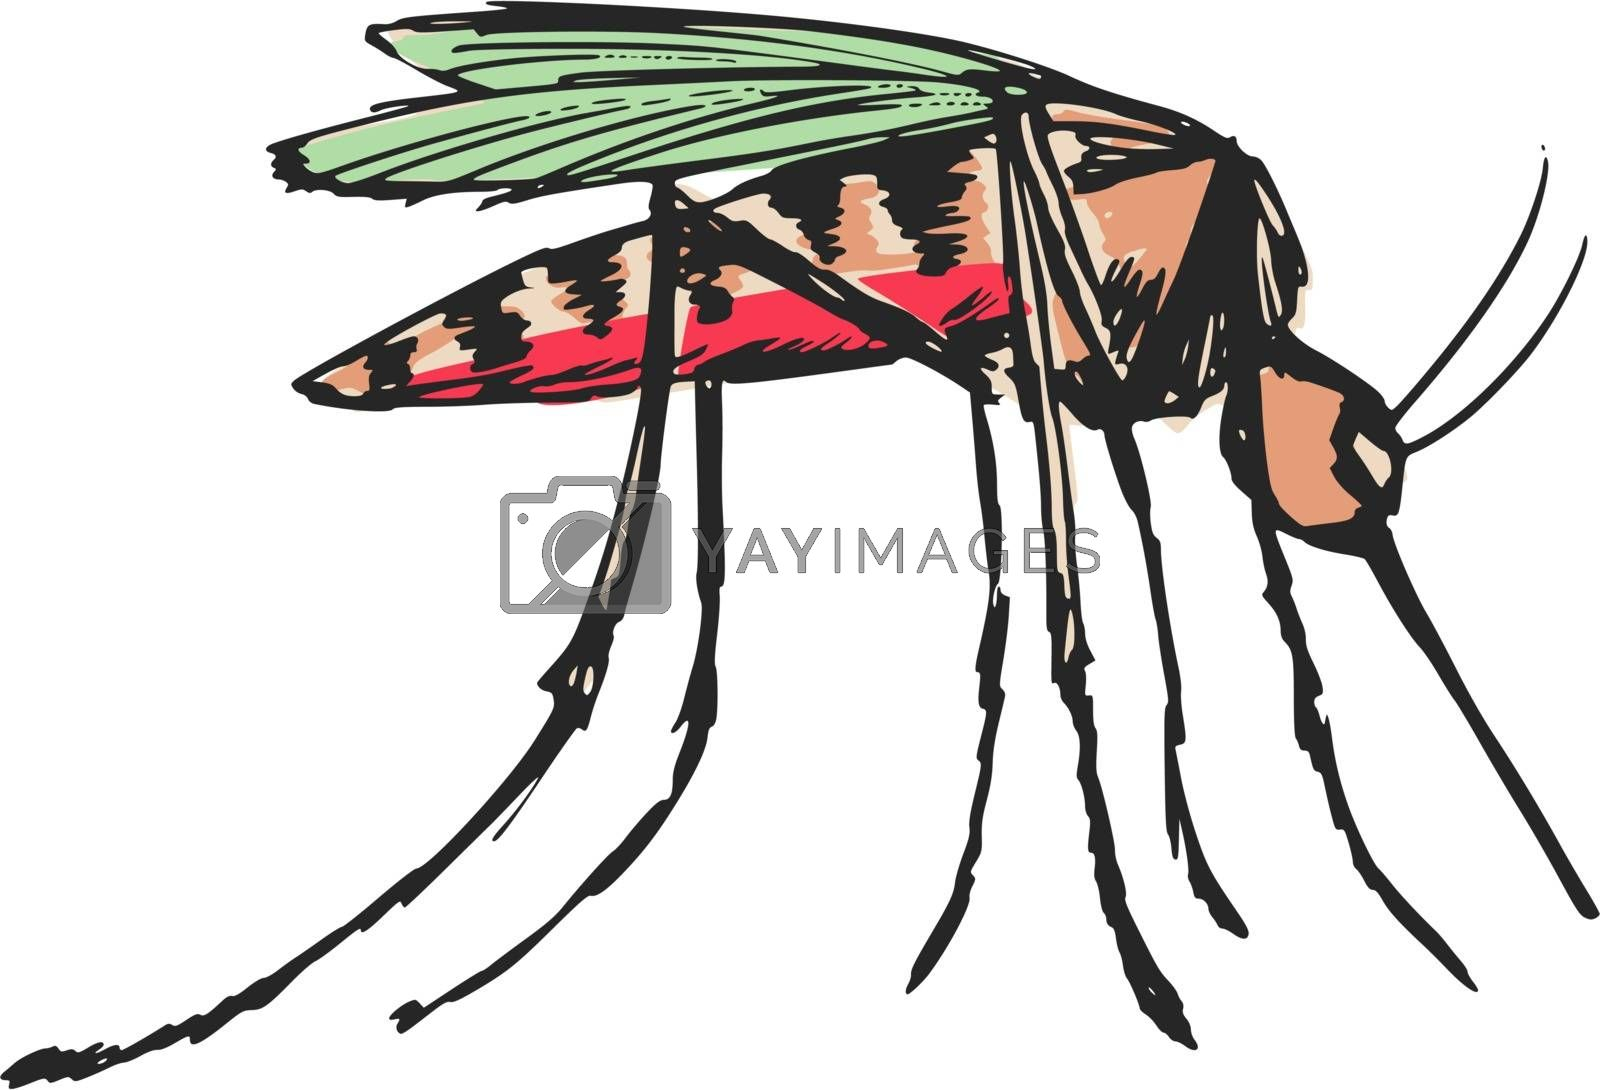 Royalty free image of mosquito by Perysty